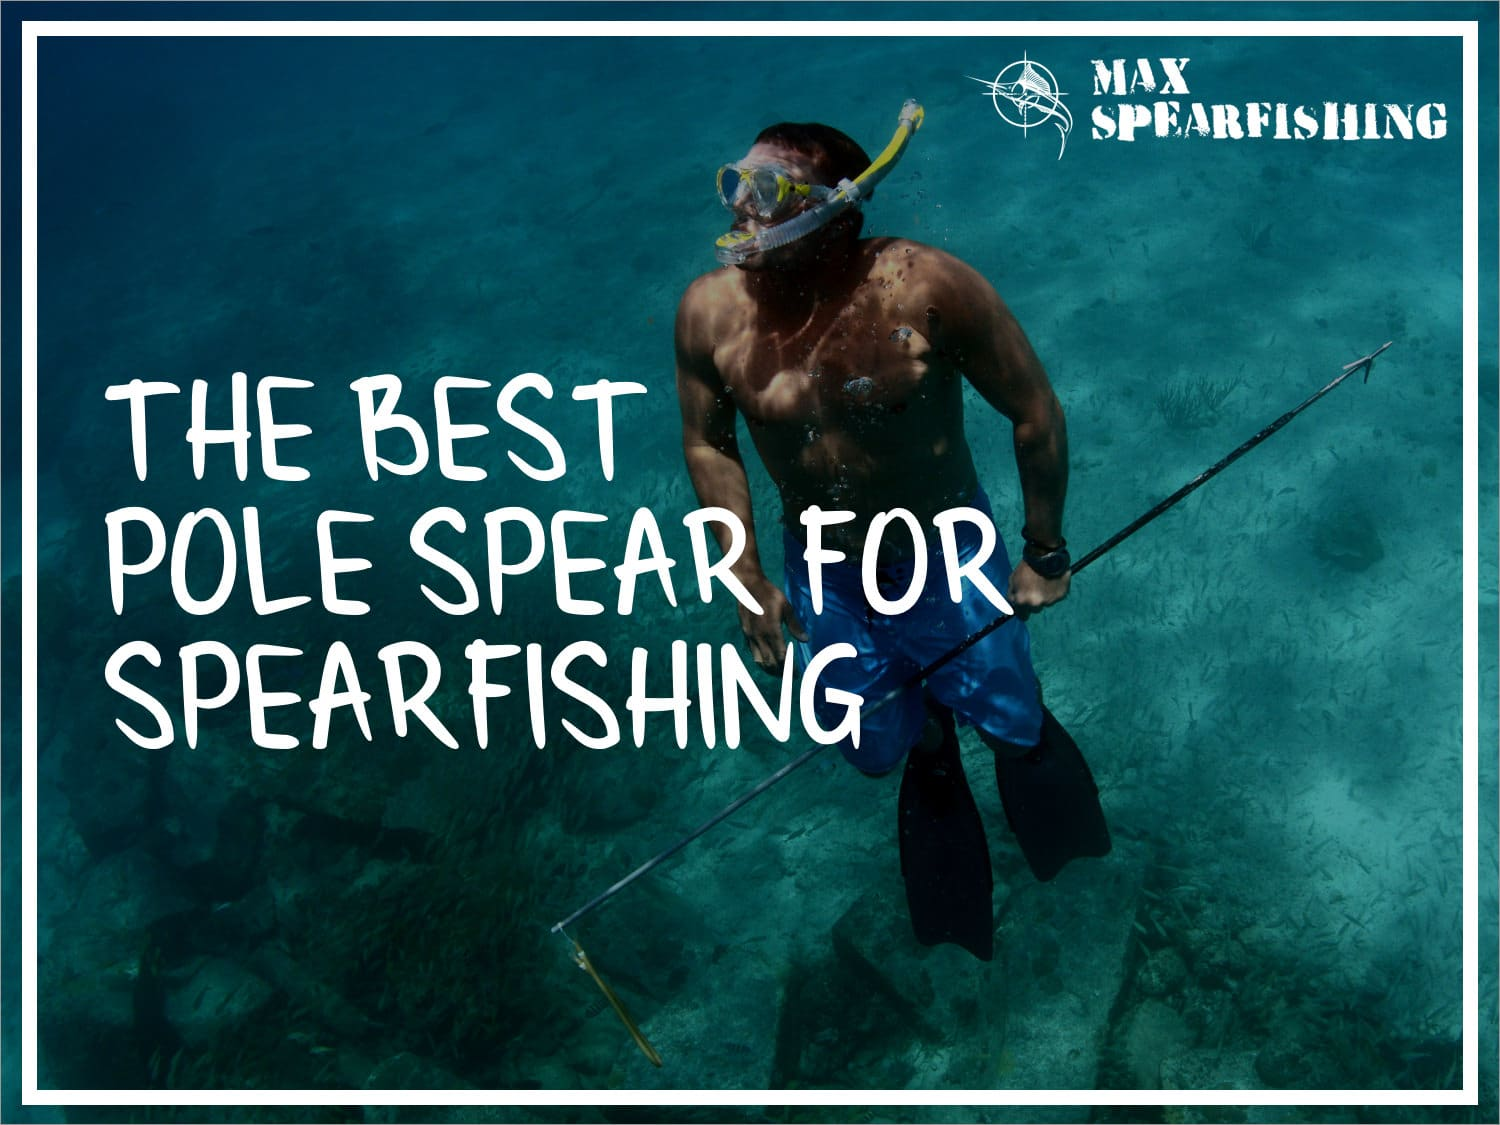 the best pole spear for spearfishing